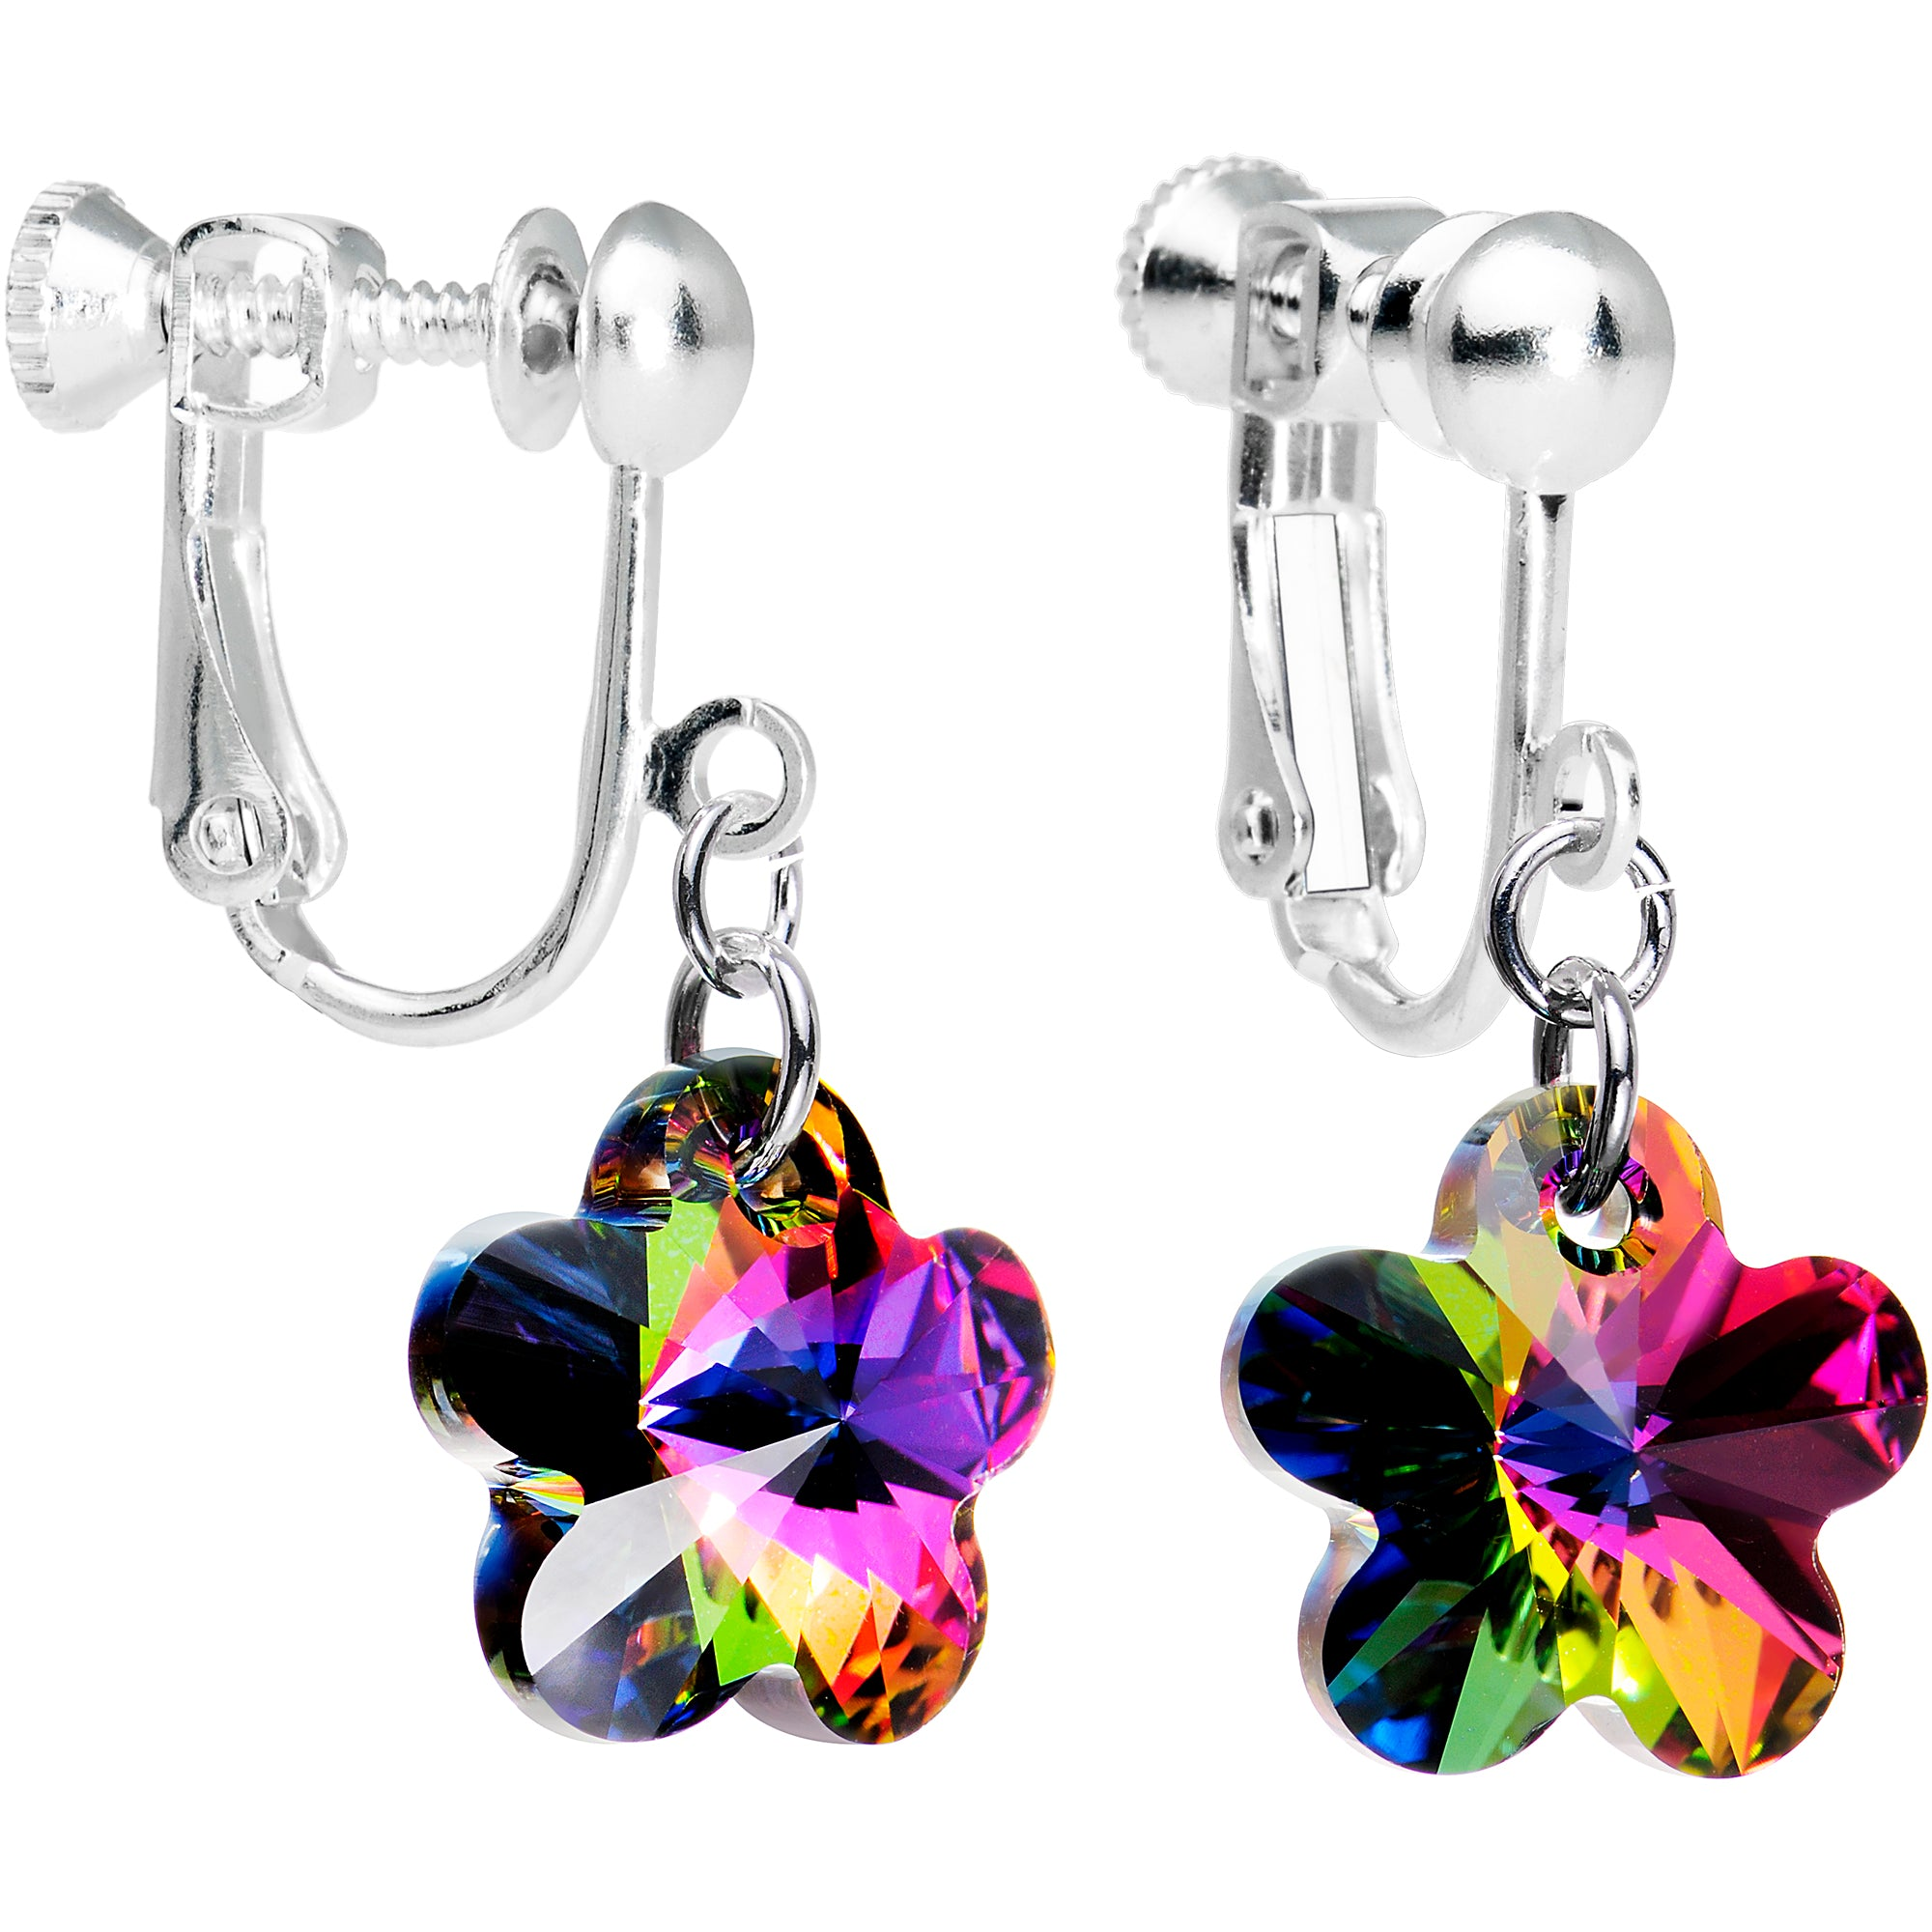 Vitrail Flower Clip On Earrings Created with Swarovski Crystals